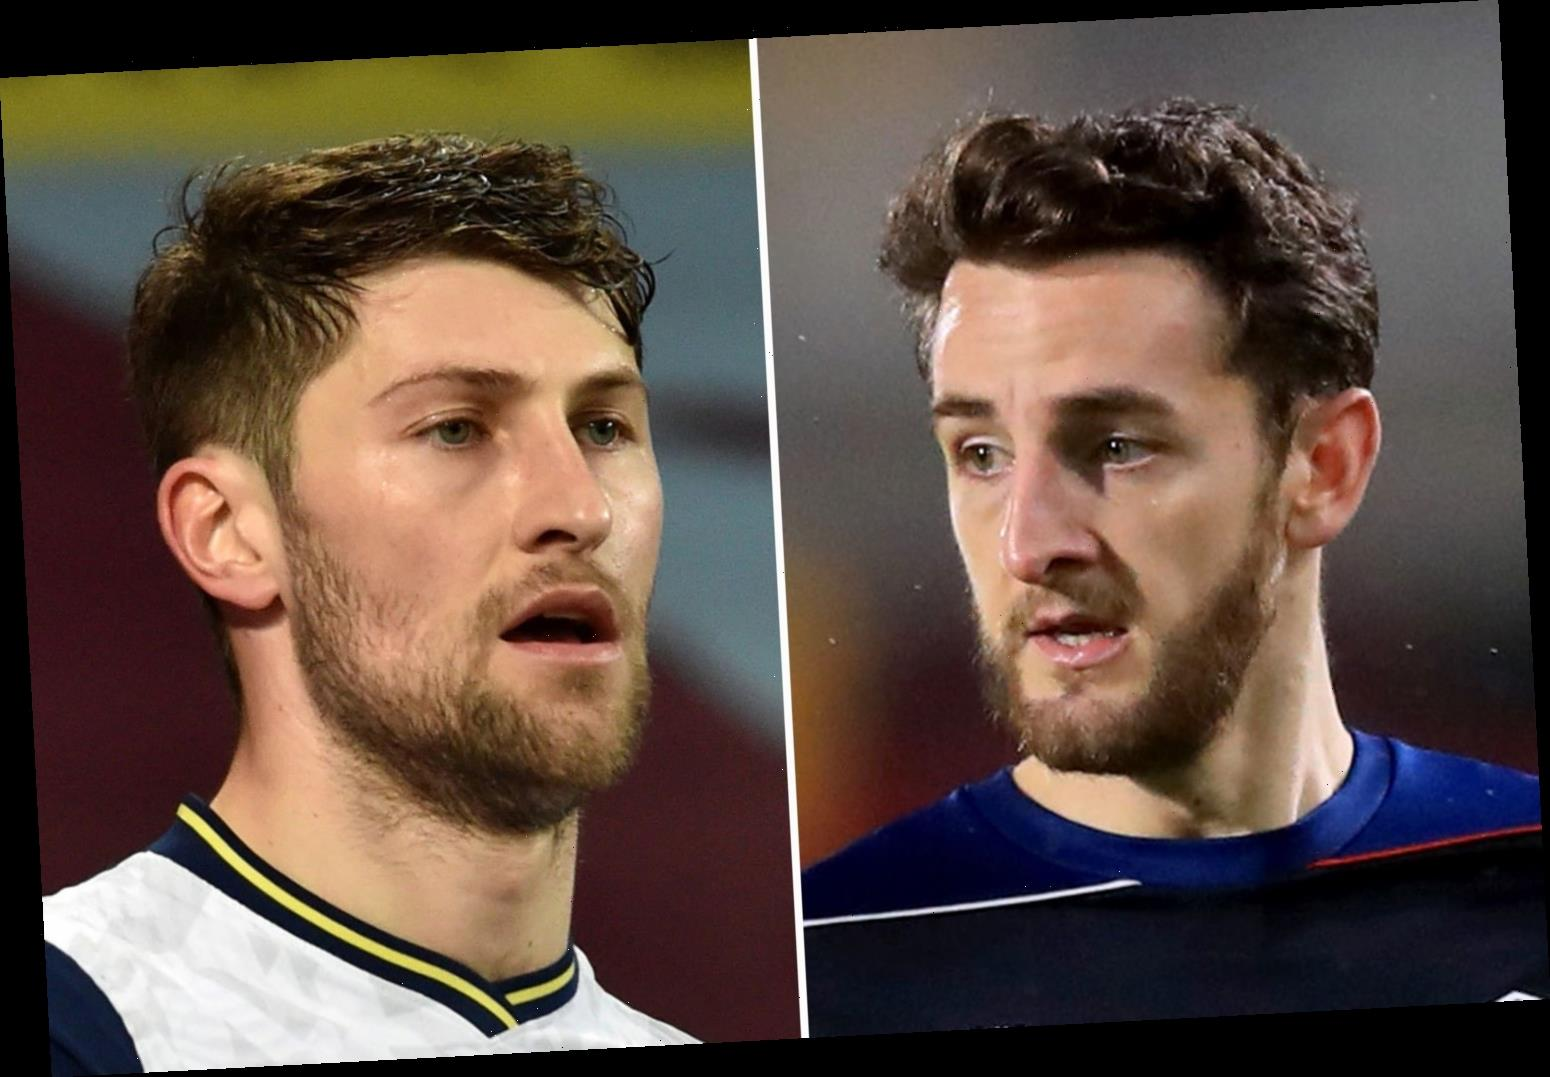 Wales suffer double injury blow with Ben Davies and Tom Lockyer ruled out of Belgium clash in World Cup qualifier